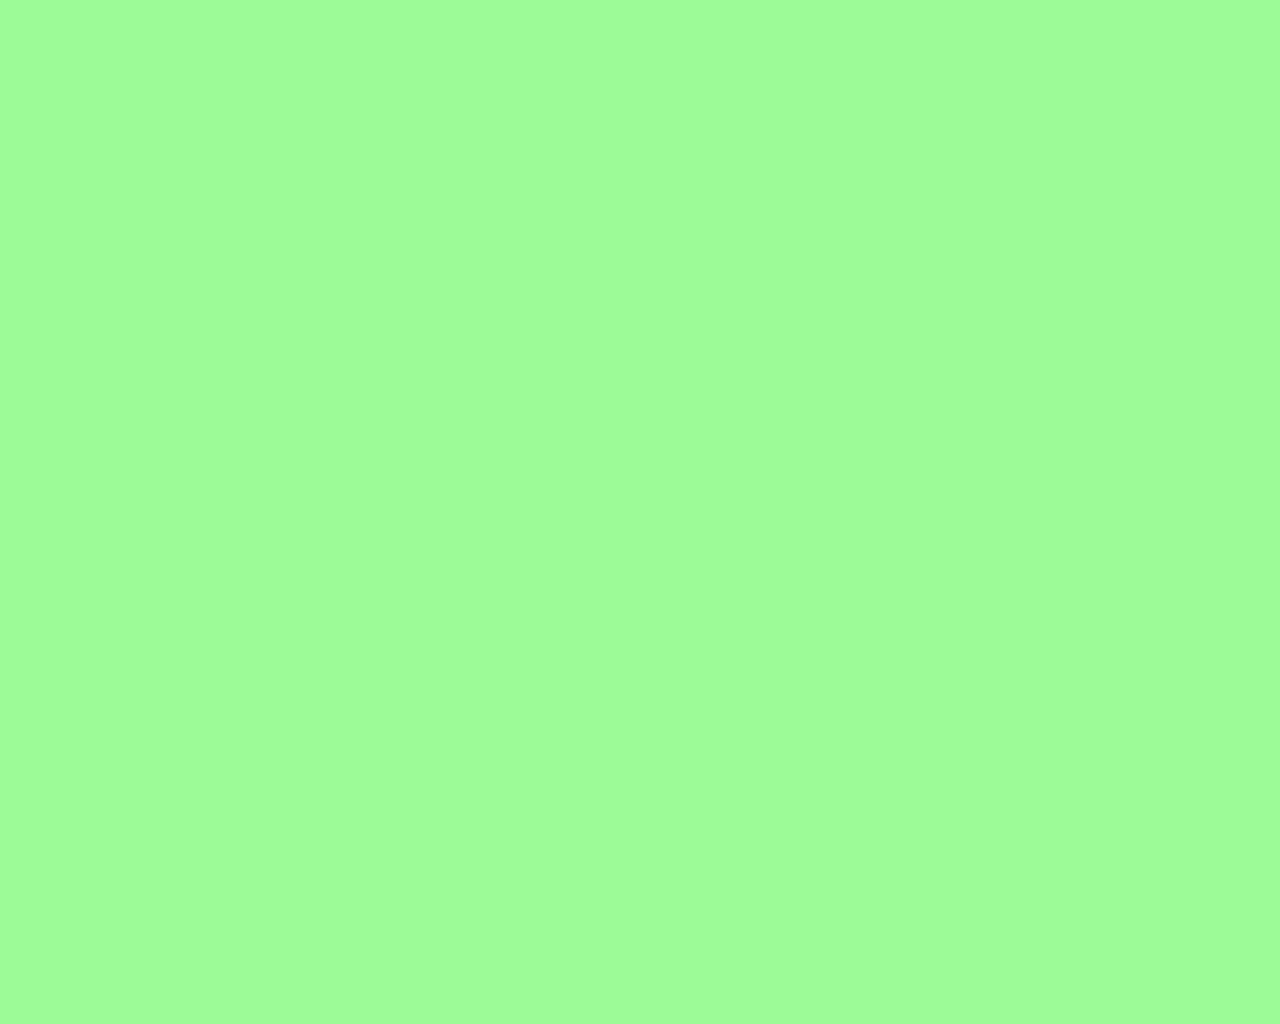 1280x1024 Pale Green Solid Color Background